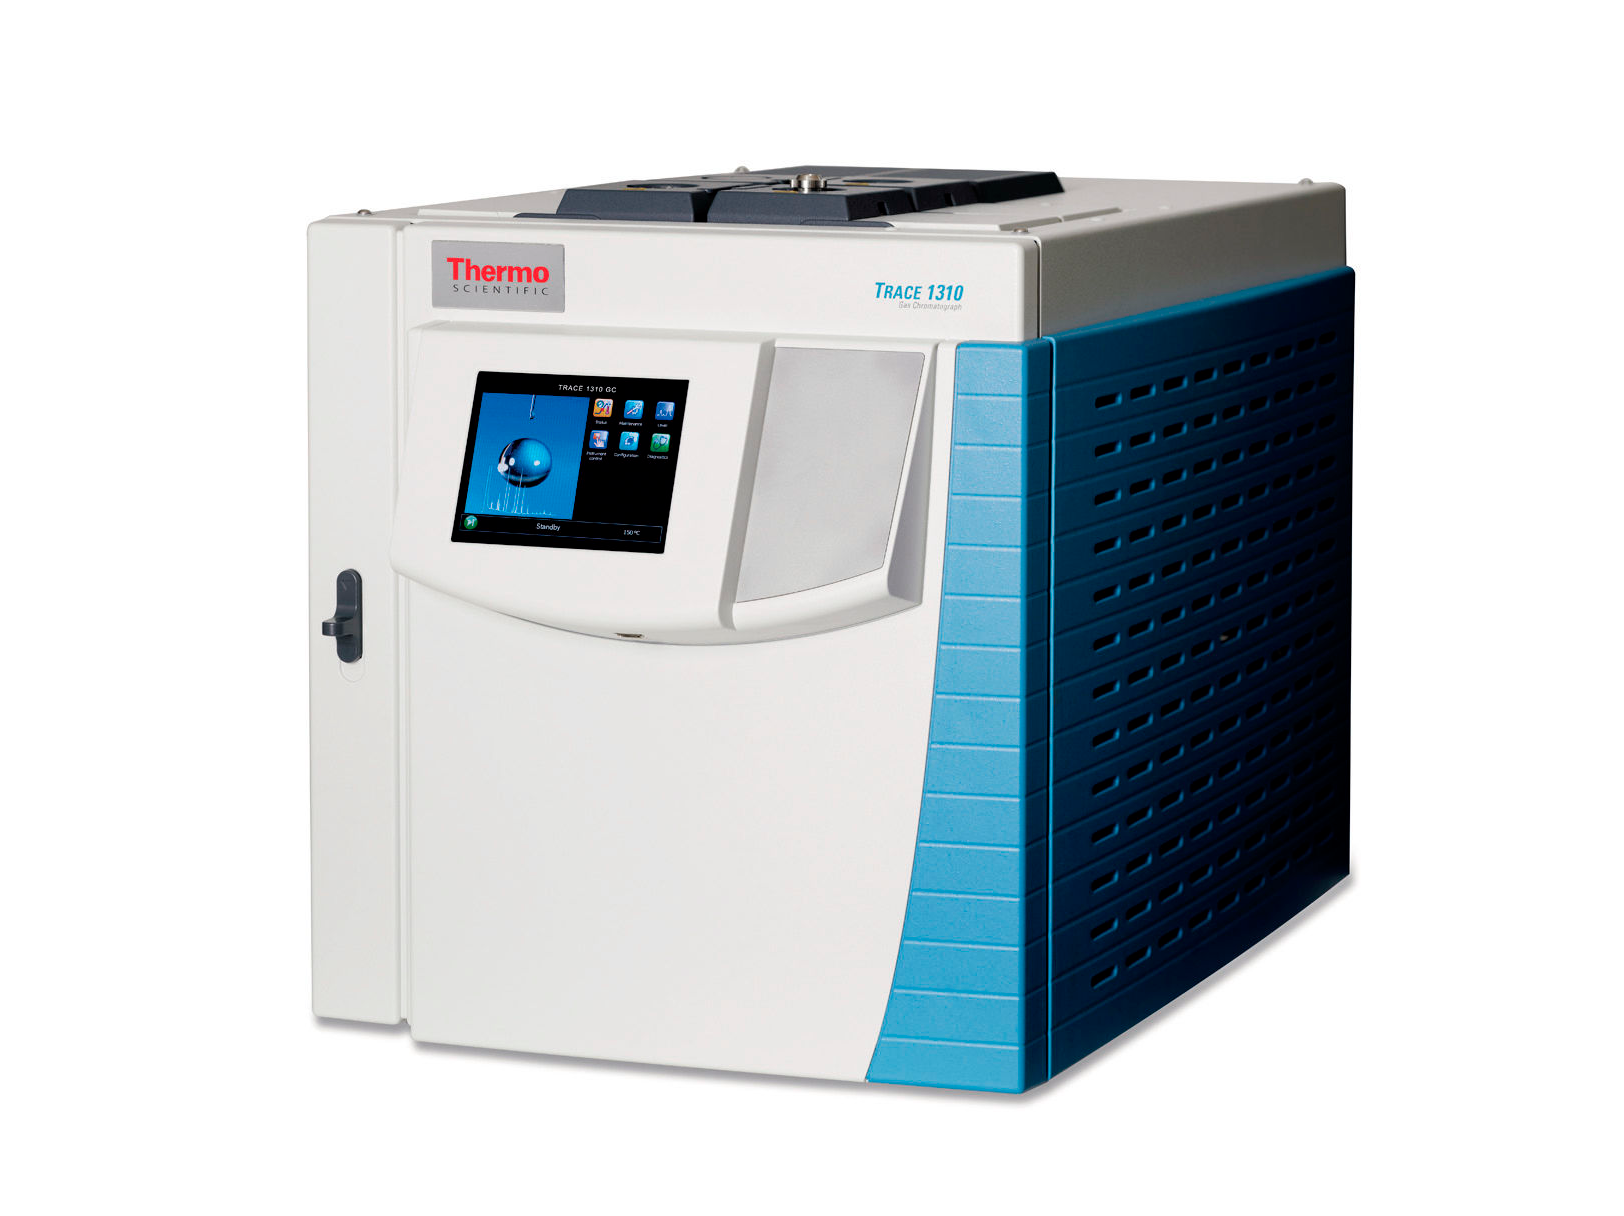 TRACE 1310 Thermo Scientific Colombia